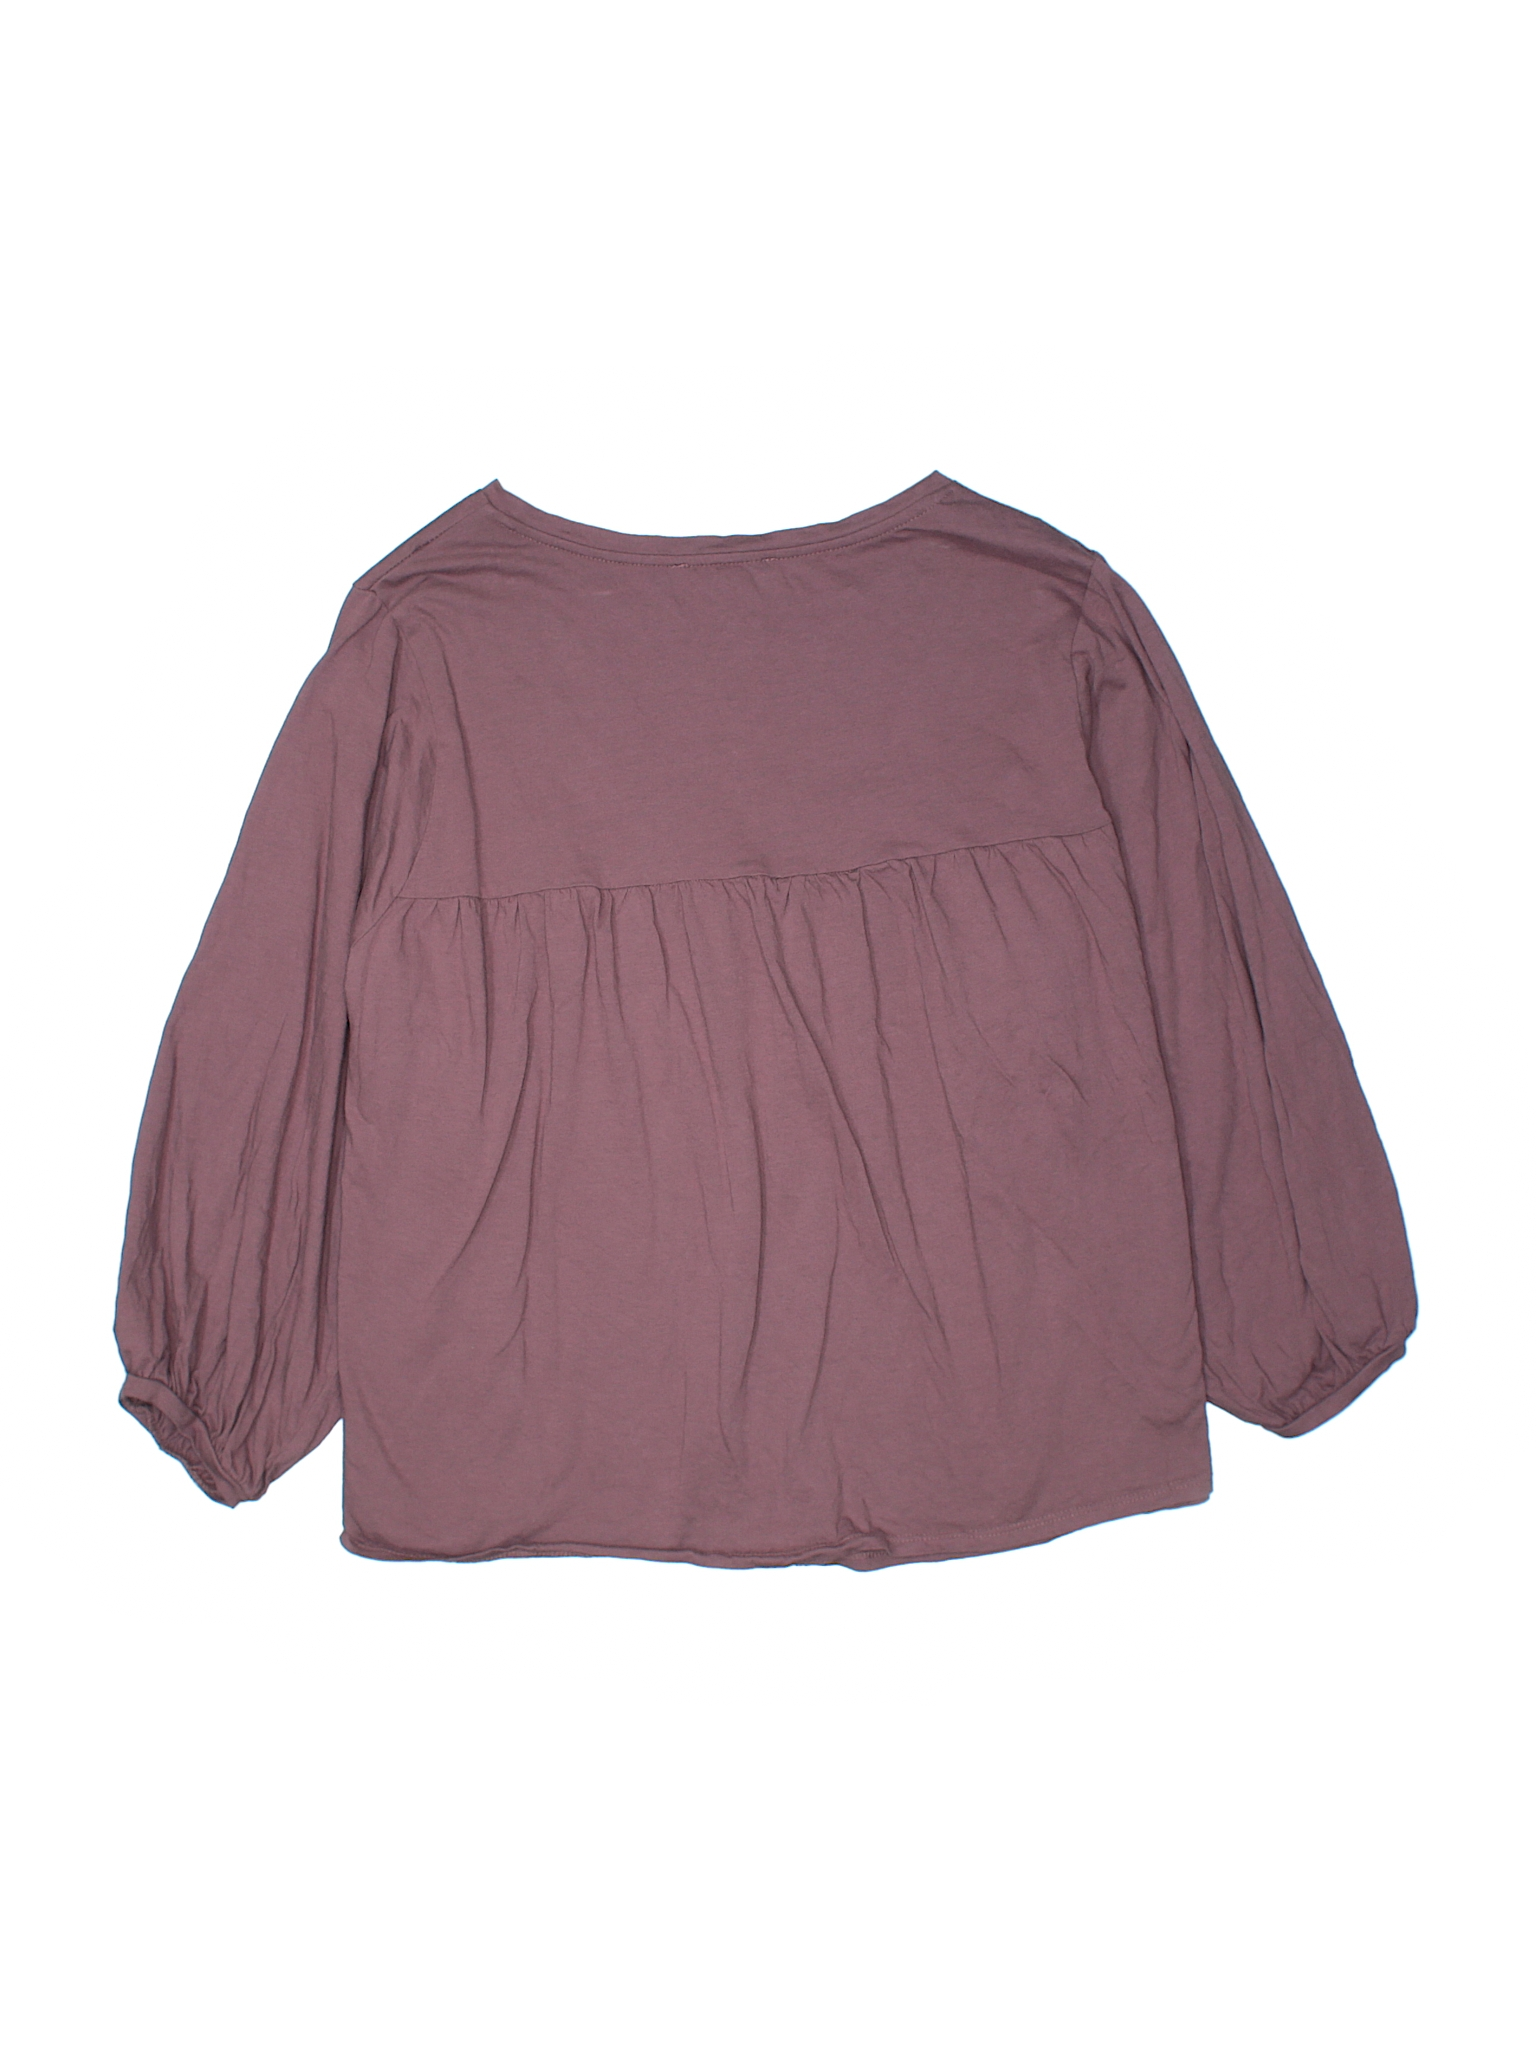 Olivia Sky 34 Sleeve Top Size 1200 Coral Womens Tops